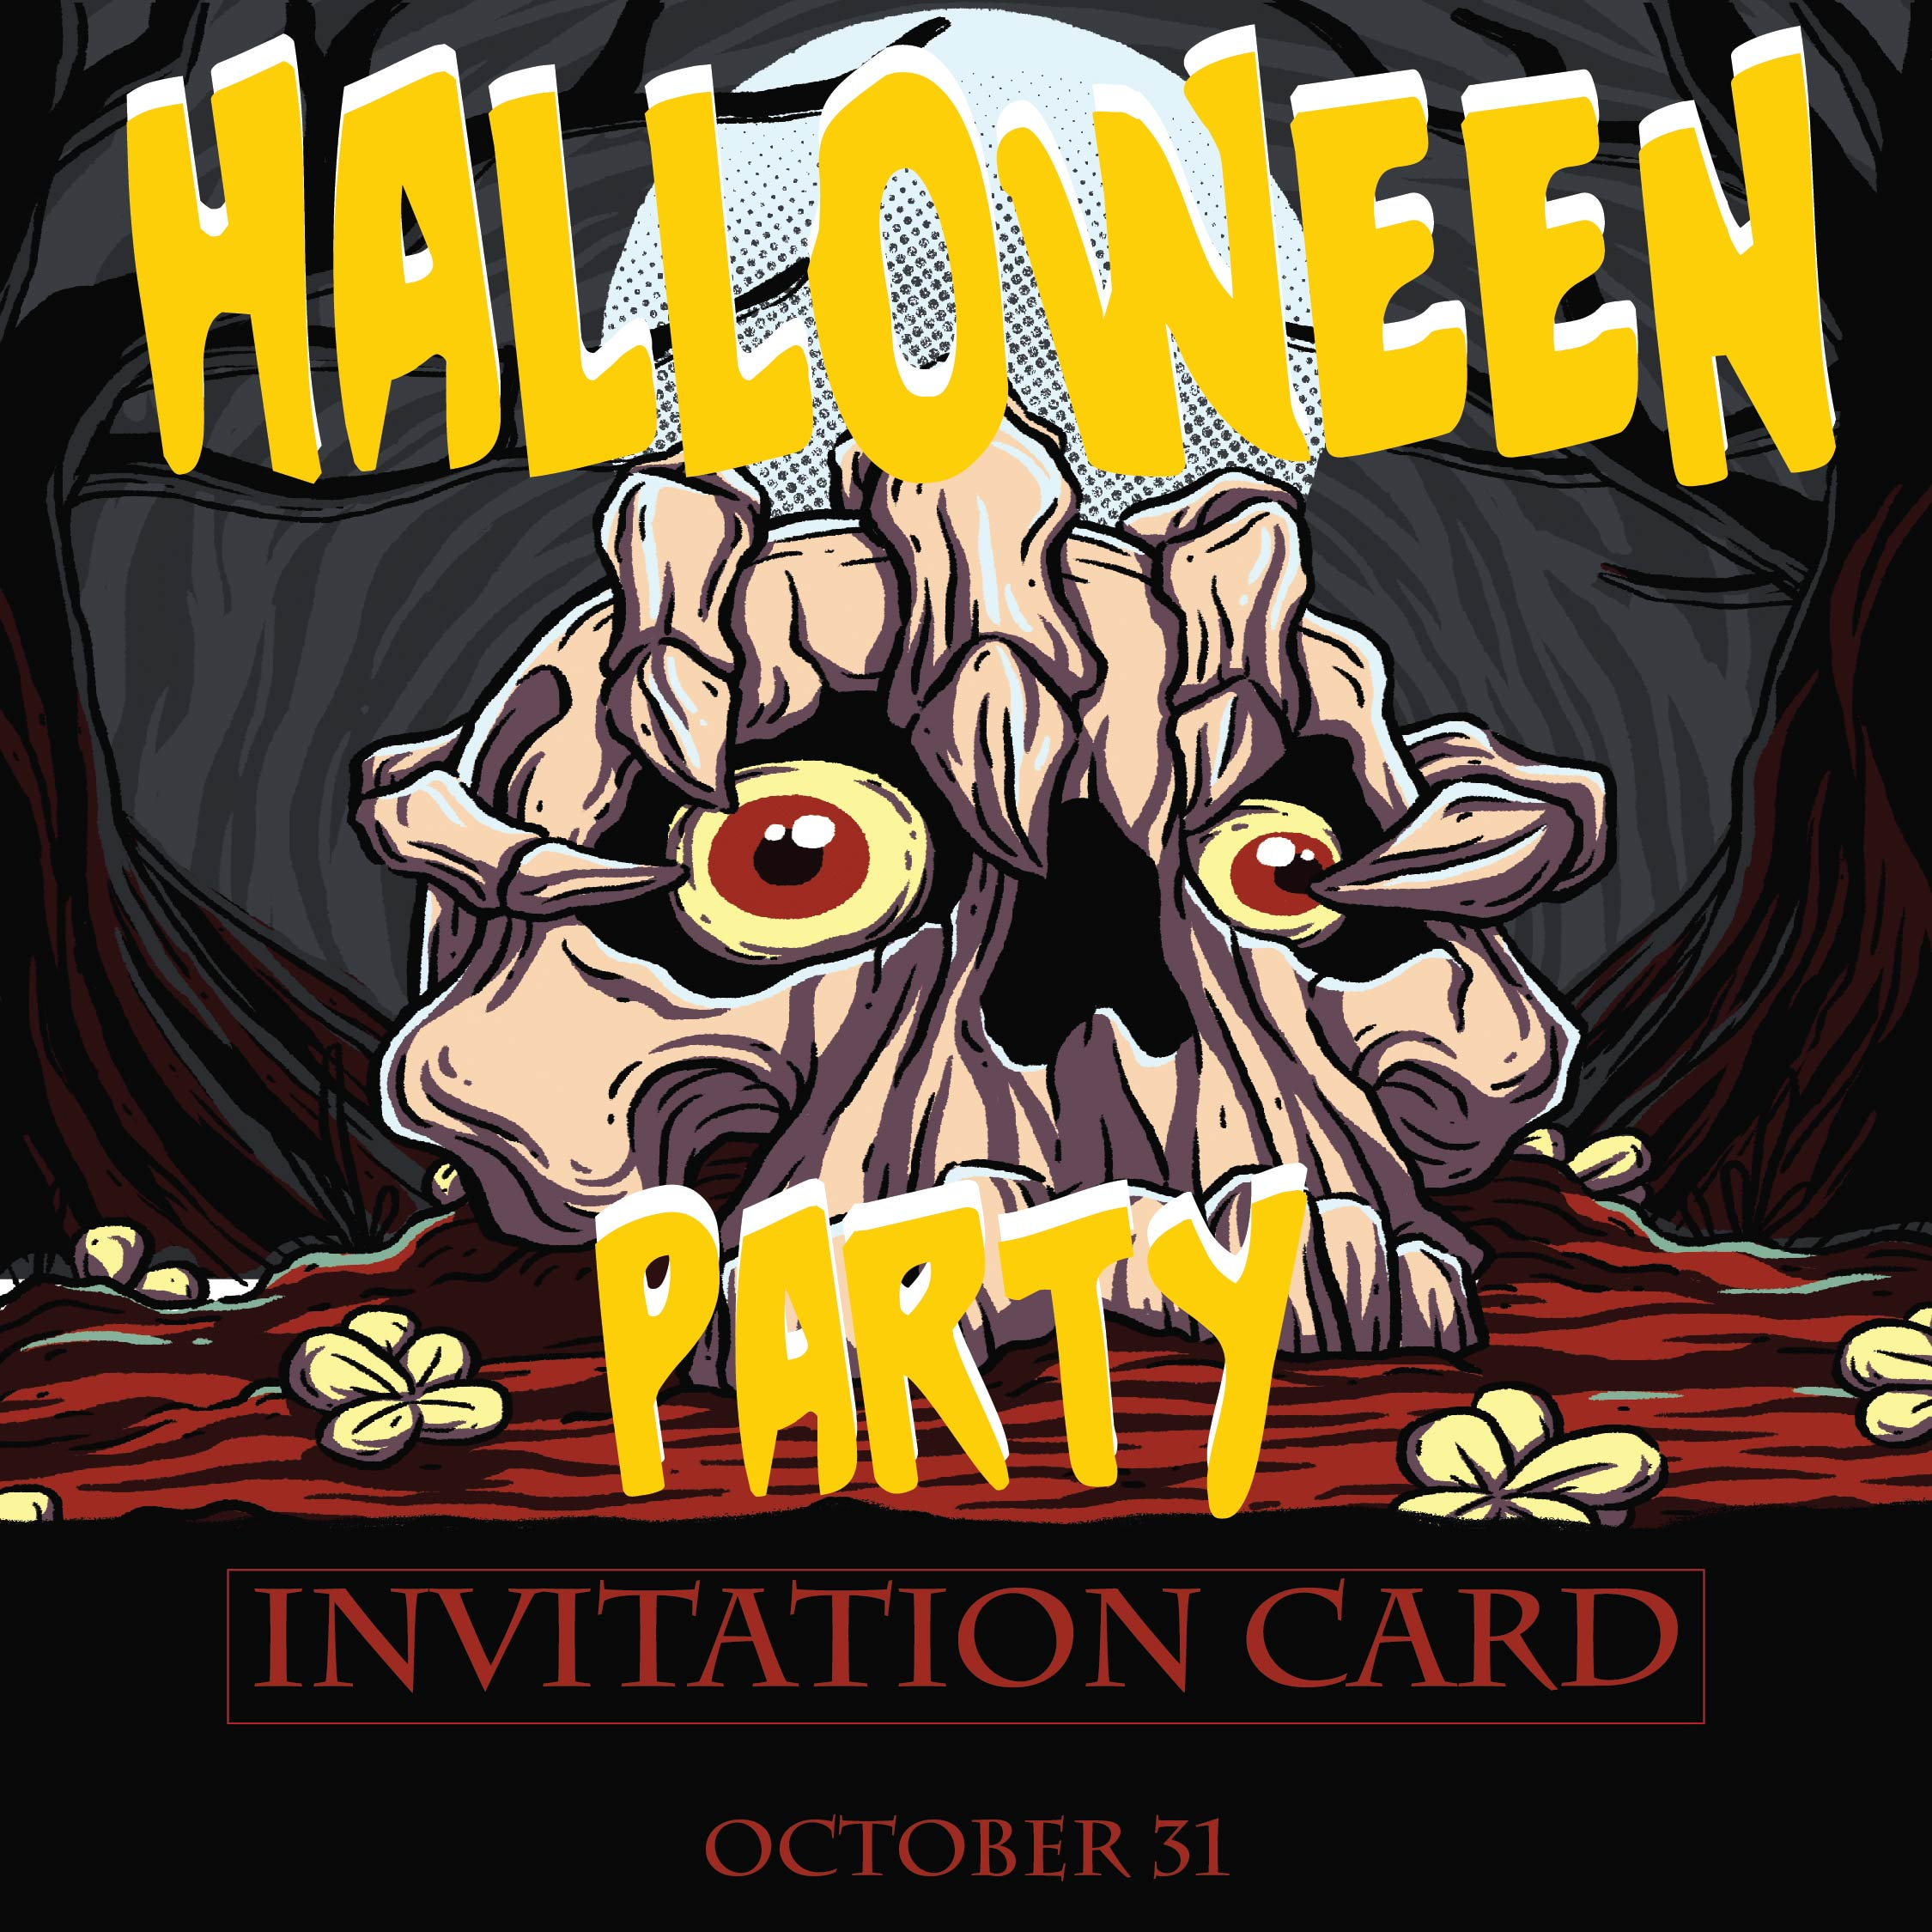 Printable Templates Halloween Party